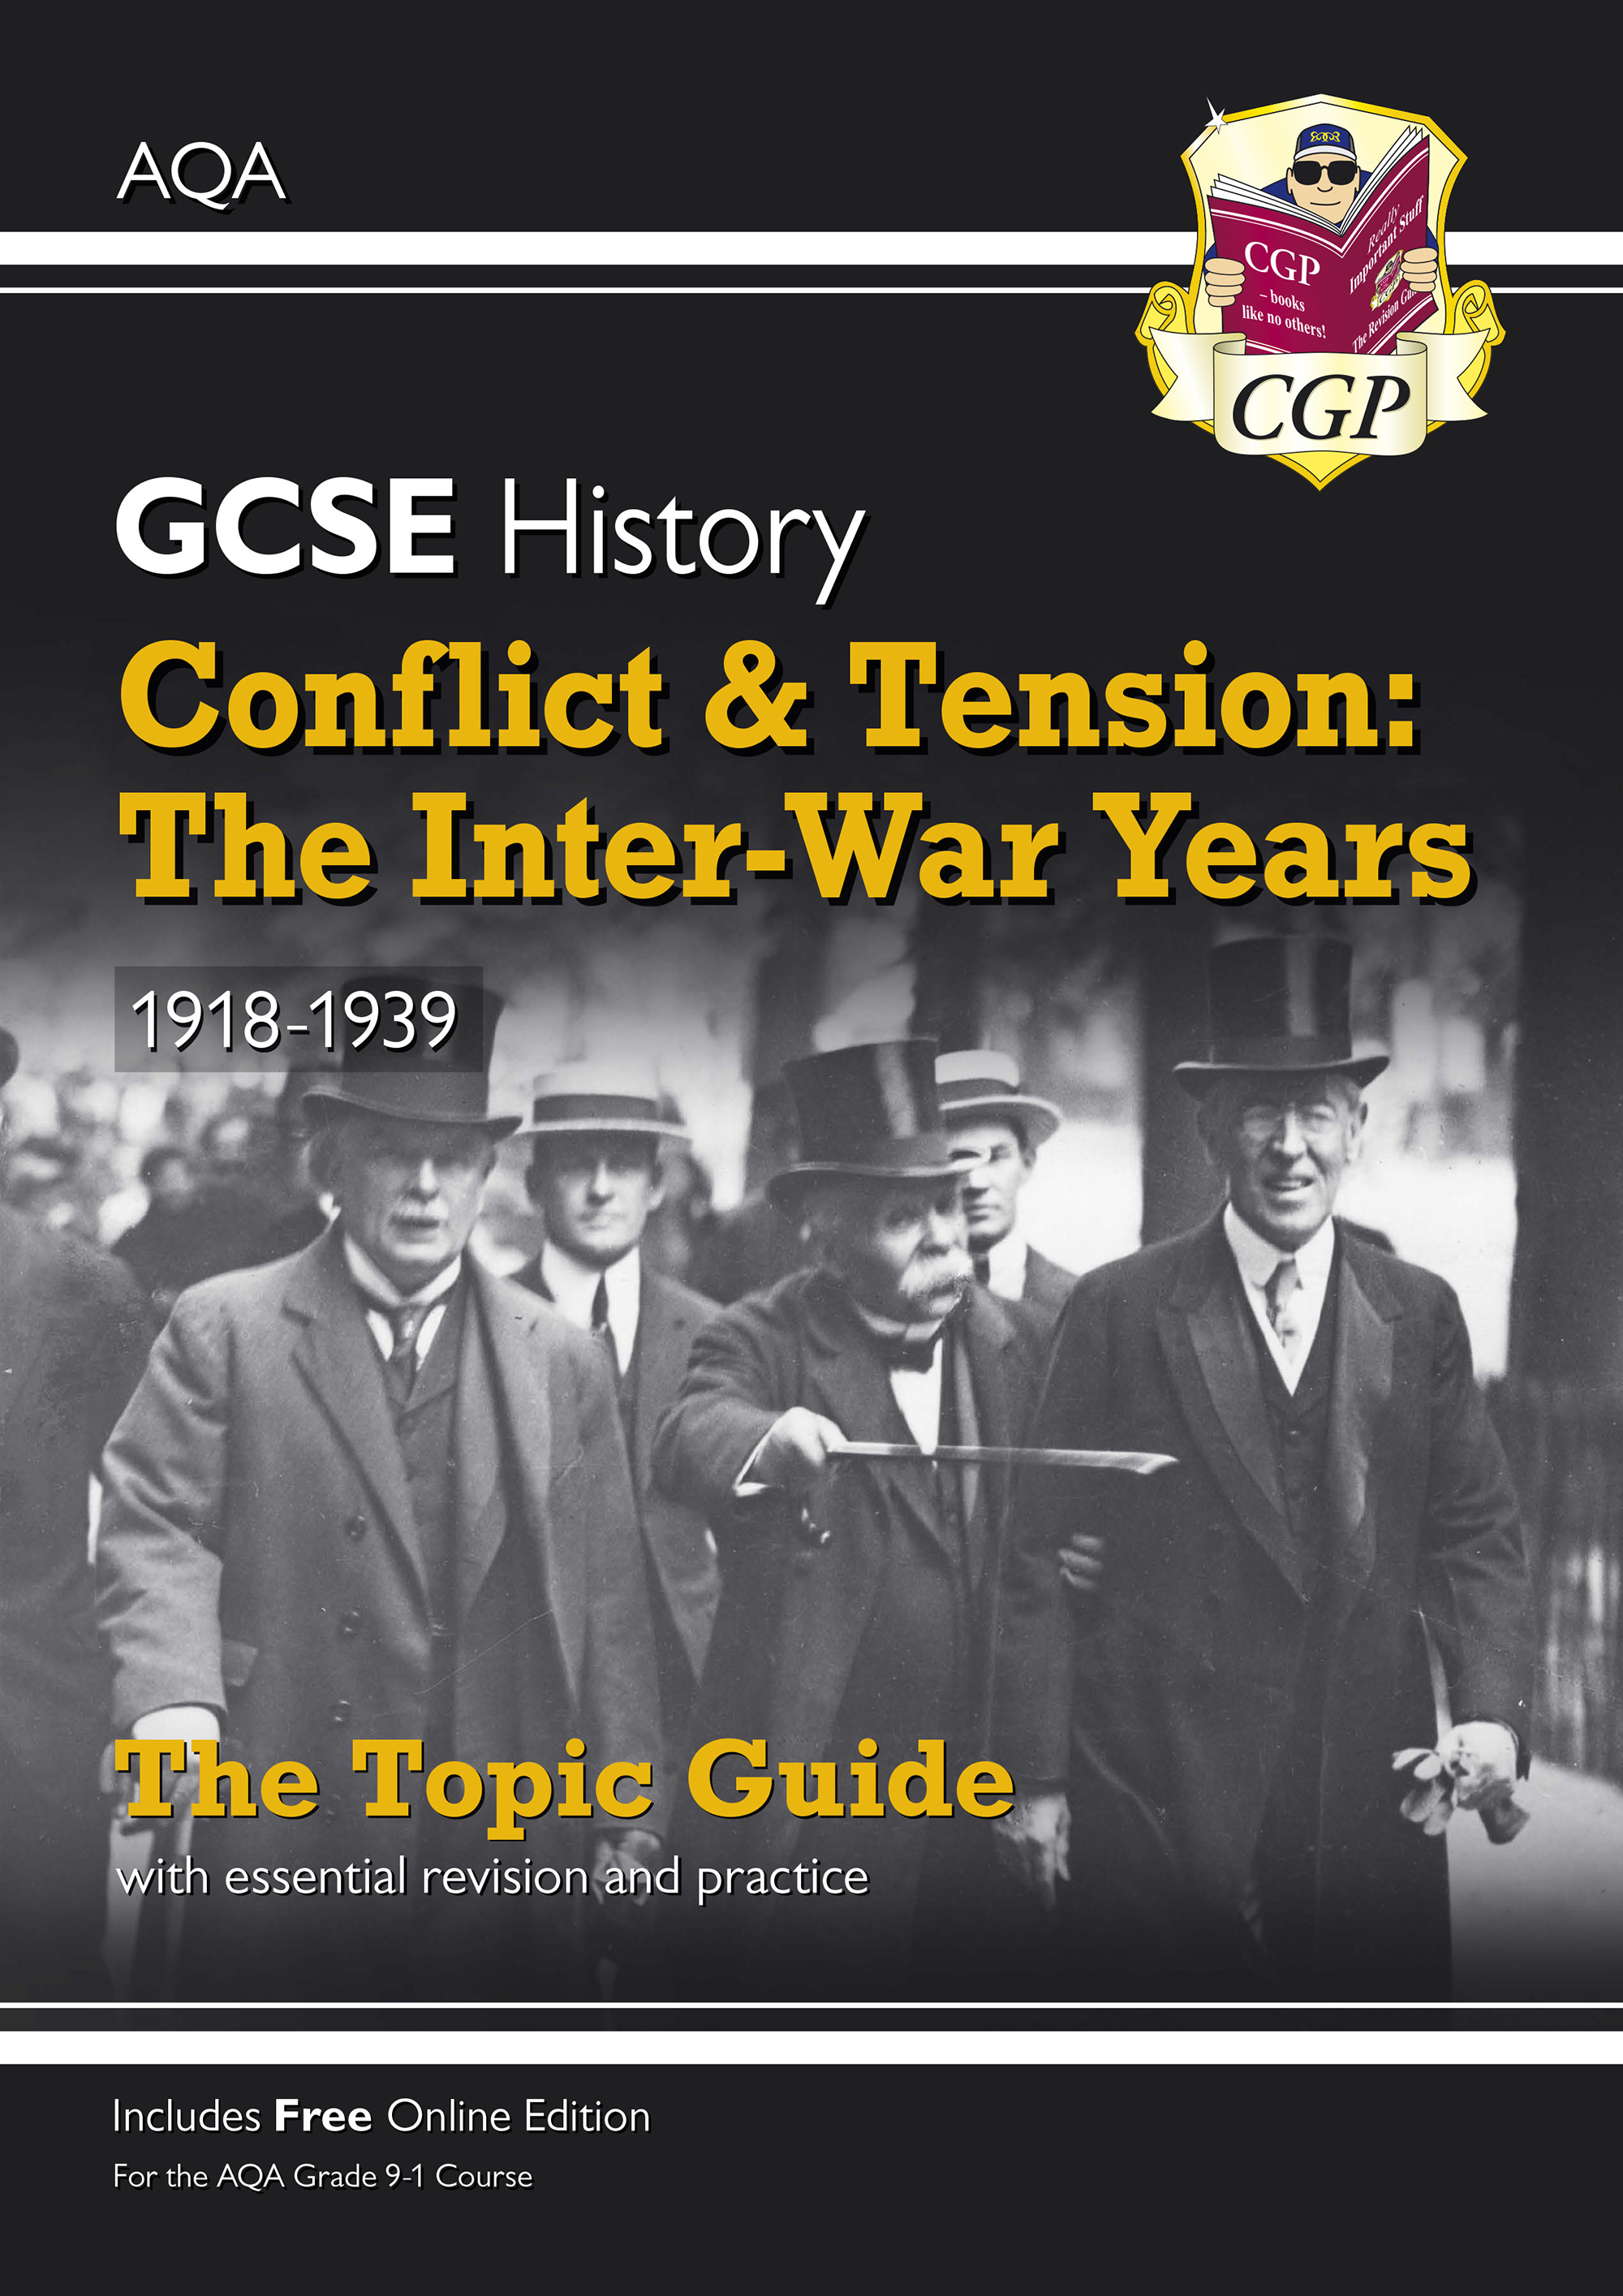 HACTO41D - Grade 9-1 GCSE History AQA Topic Guide - Conflict & Tension: Inter-War Years, 1918-1939 O